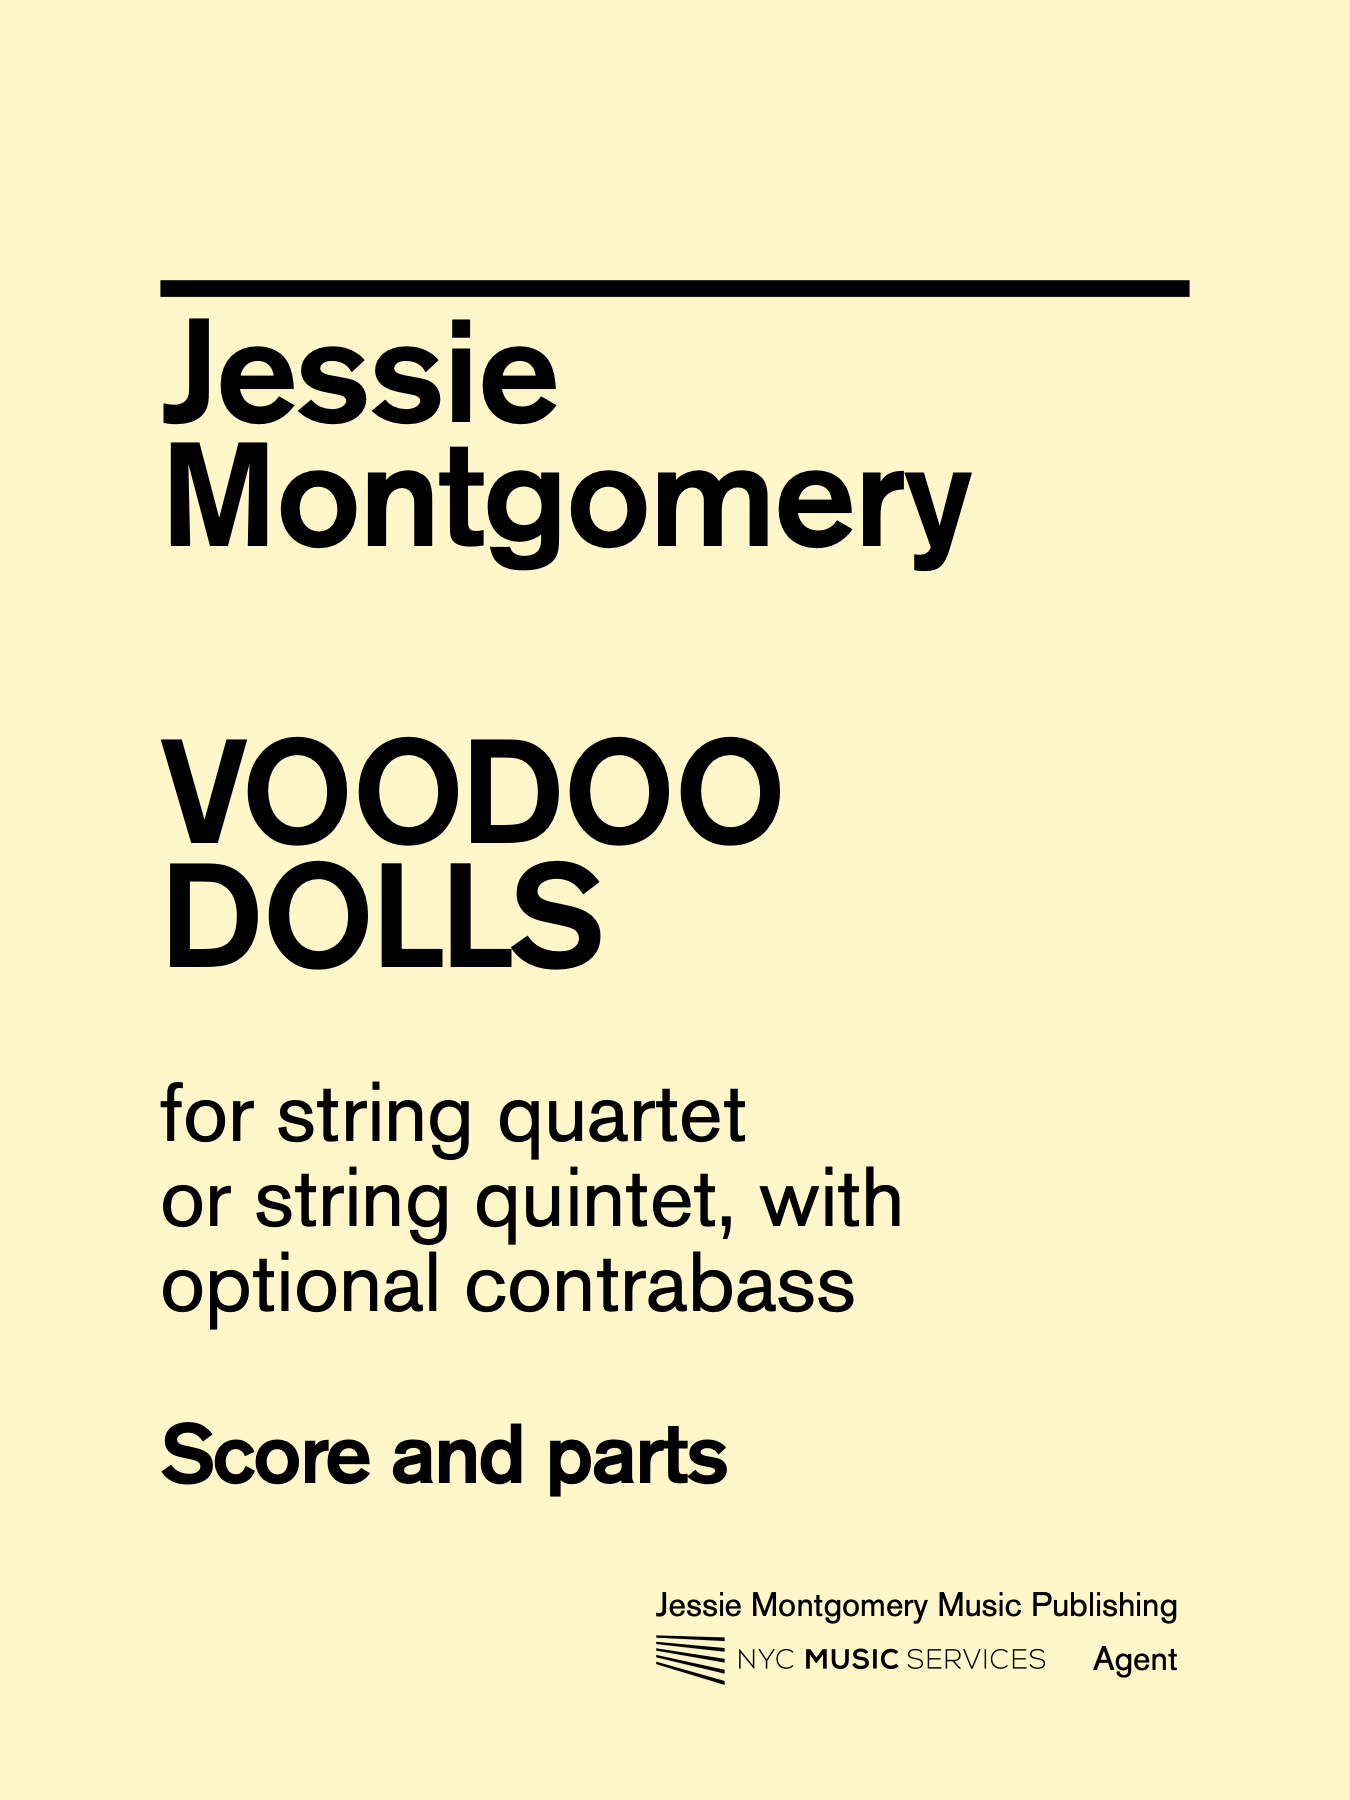 Jessie Montgomery Music Montgomery, Jessie: Voodoo Dolls for String Quartet, NYC Music Services